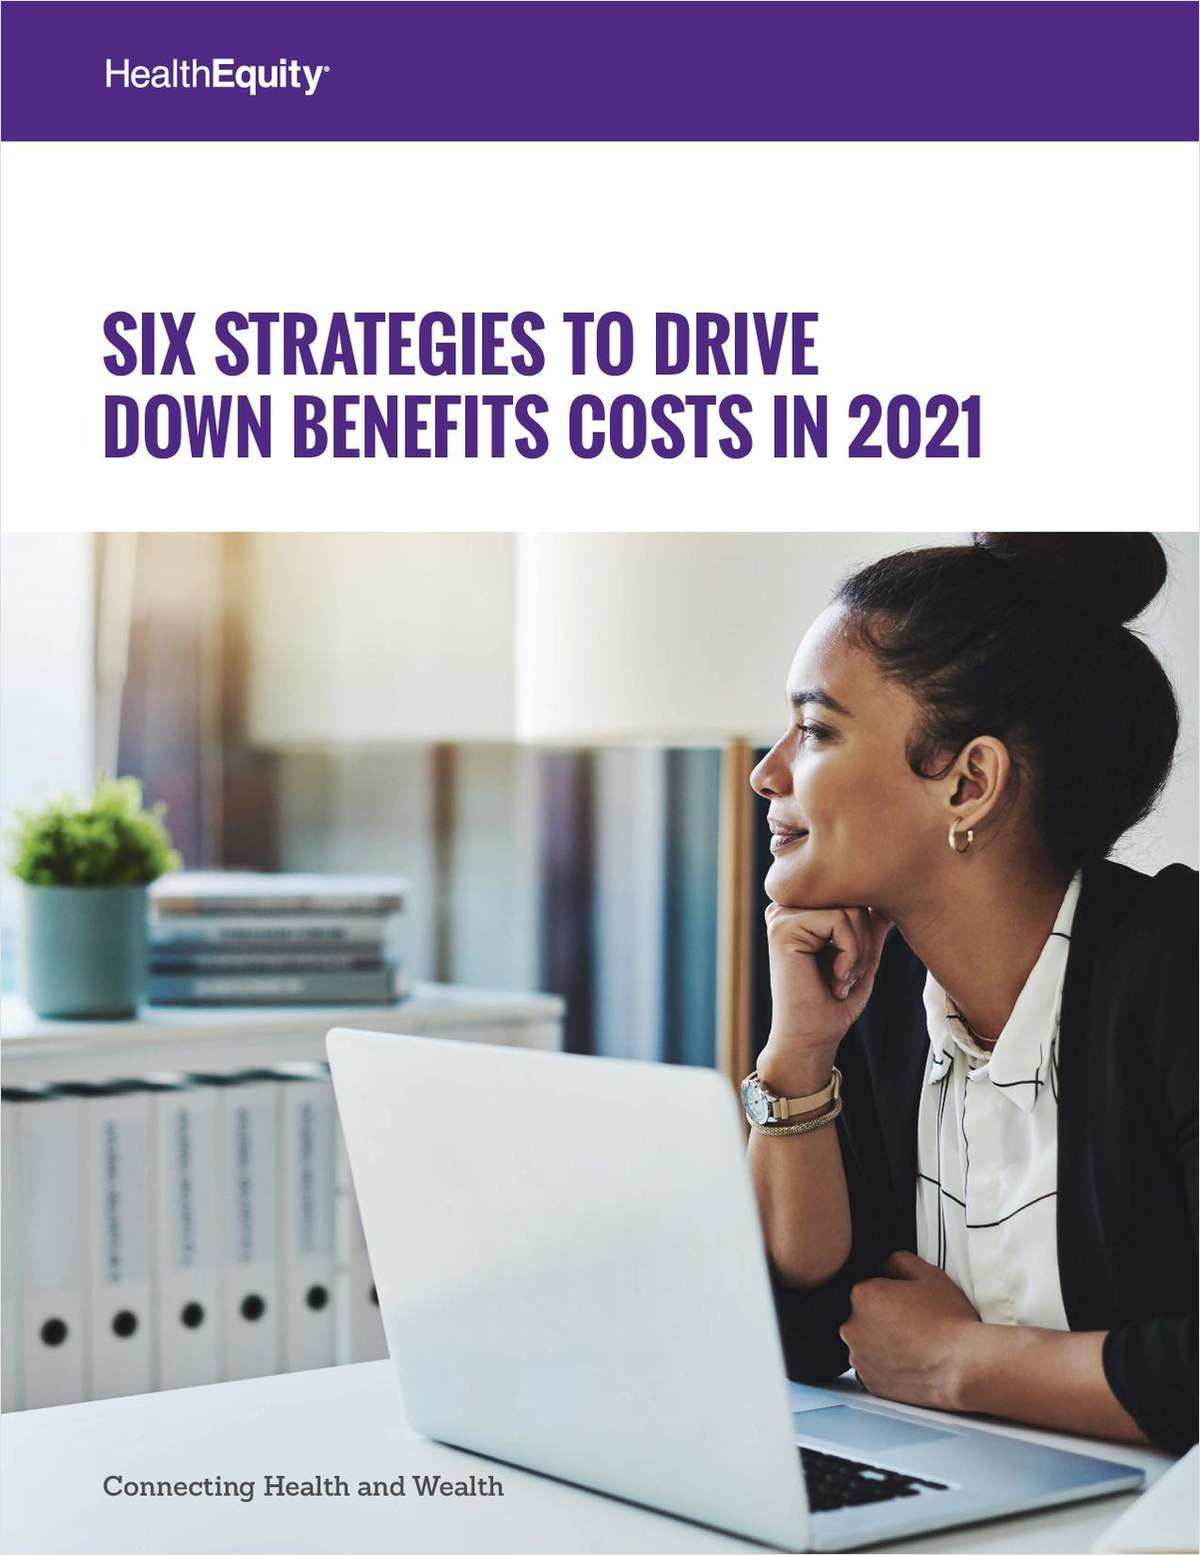 Six Strategies to Reduce Benefits Costs in 2021